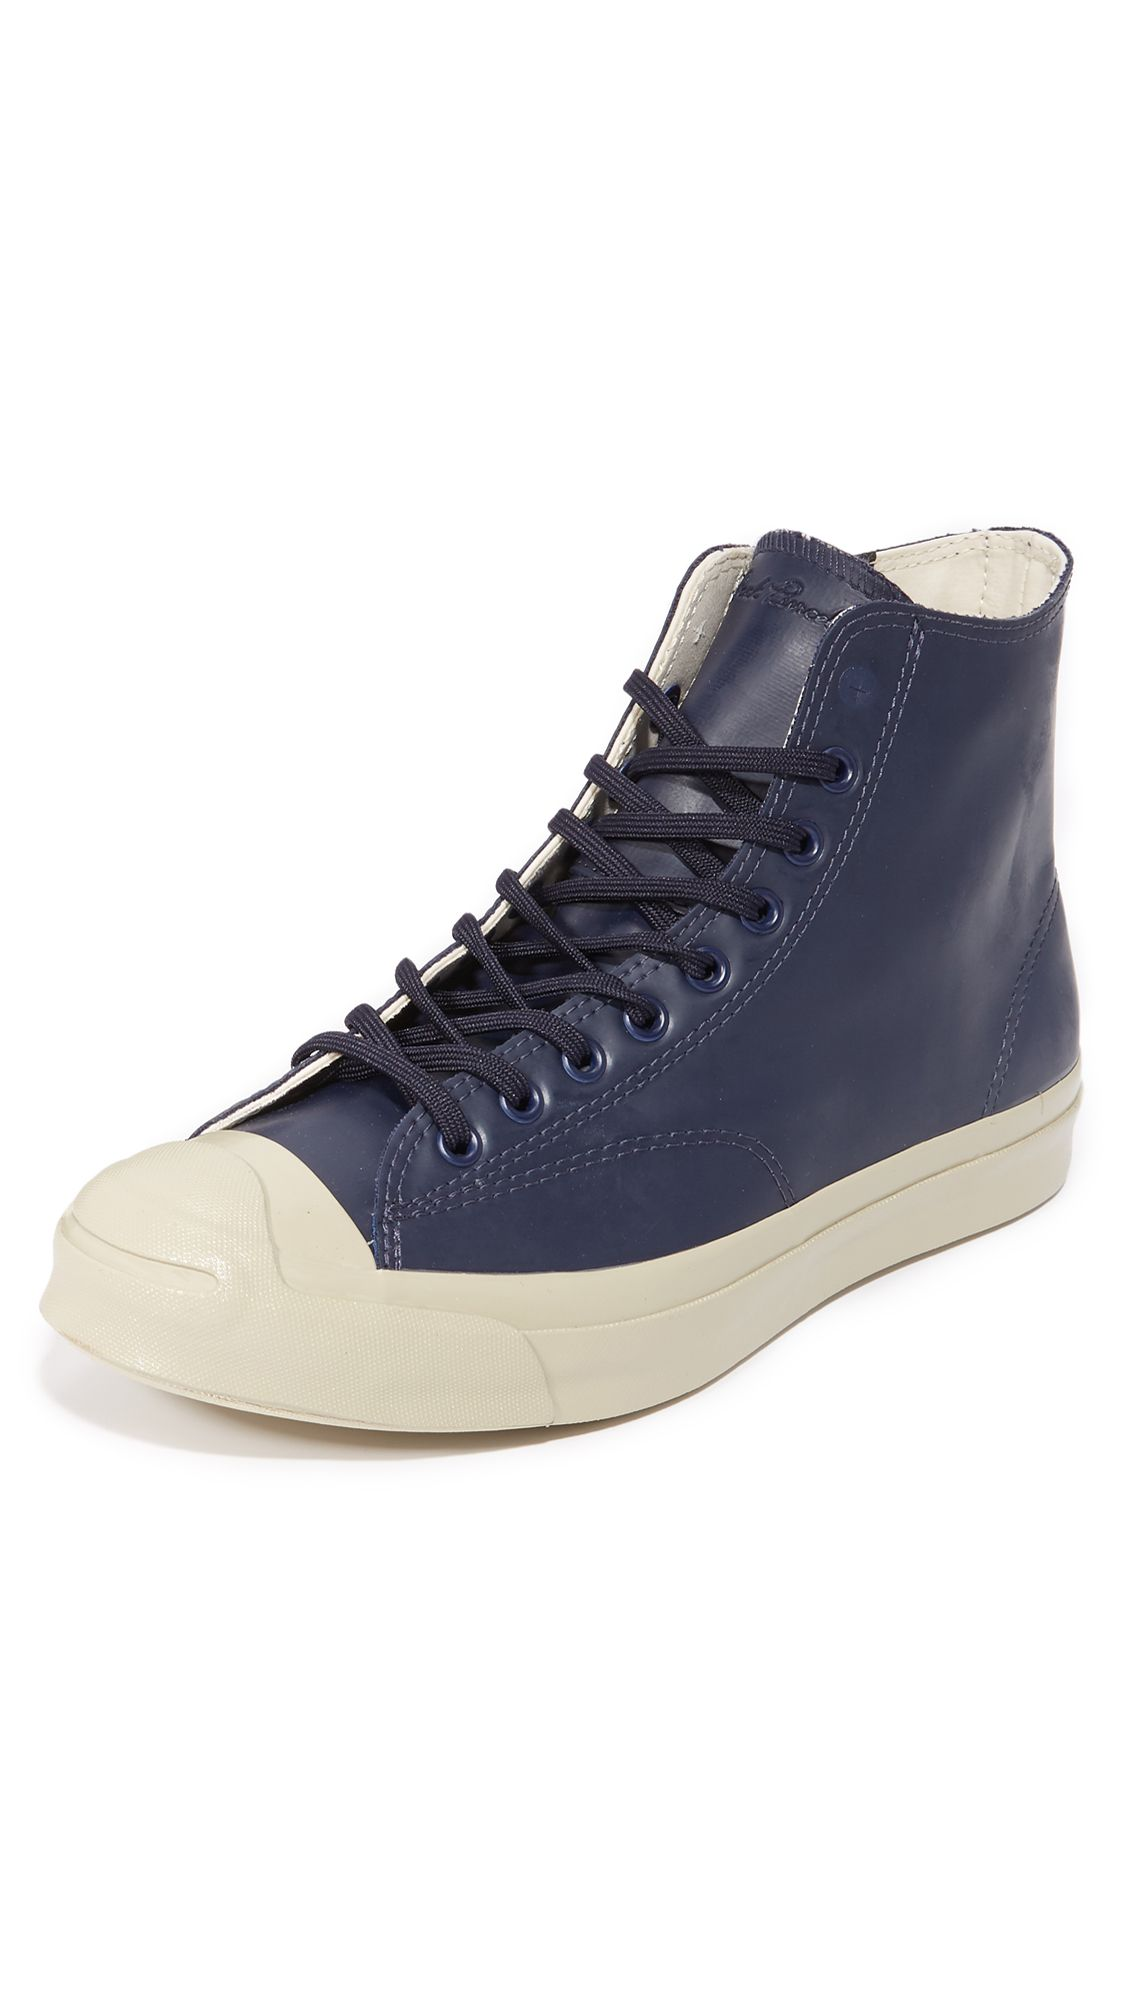 1cdb97c8e130 CONVERSE Jack Purcell Signature Rubber High Top Sneakers.  converse  shoes   sneakers